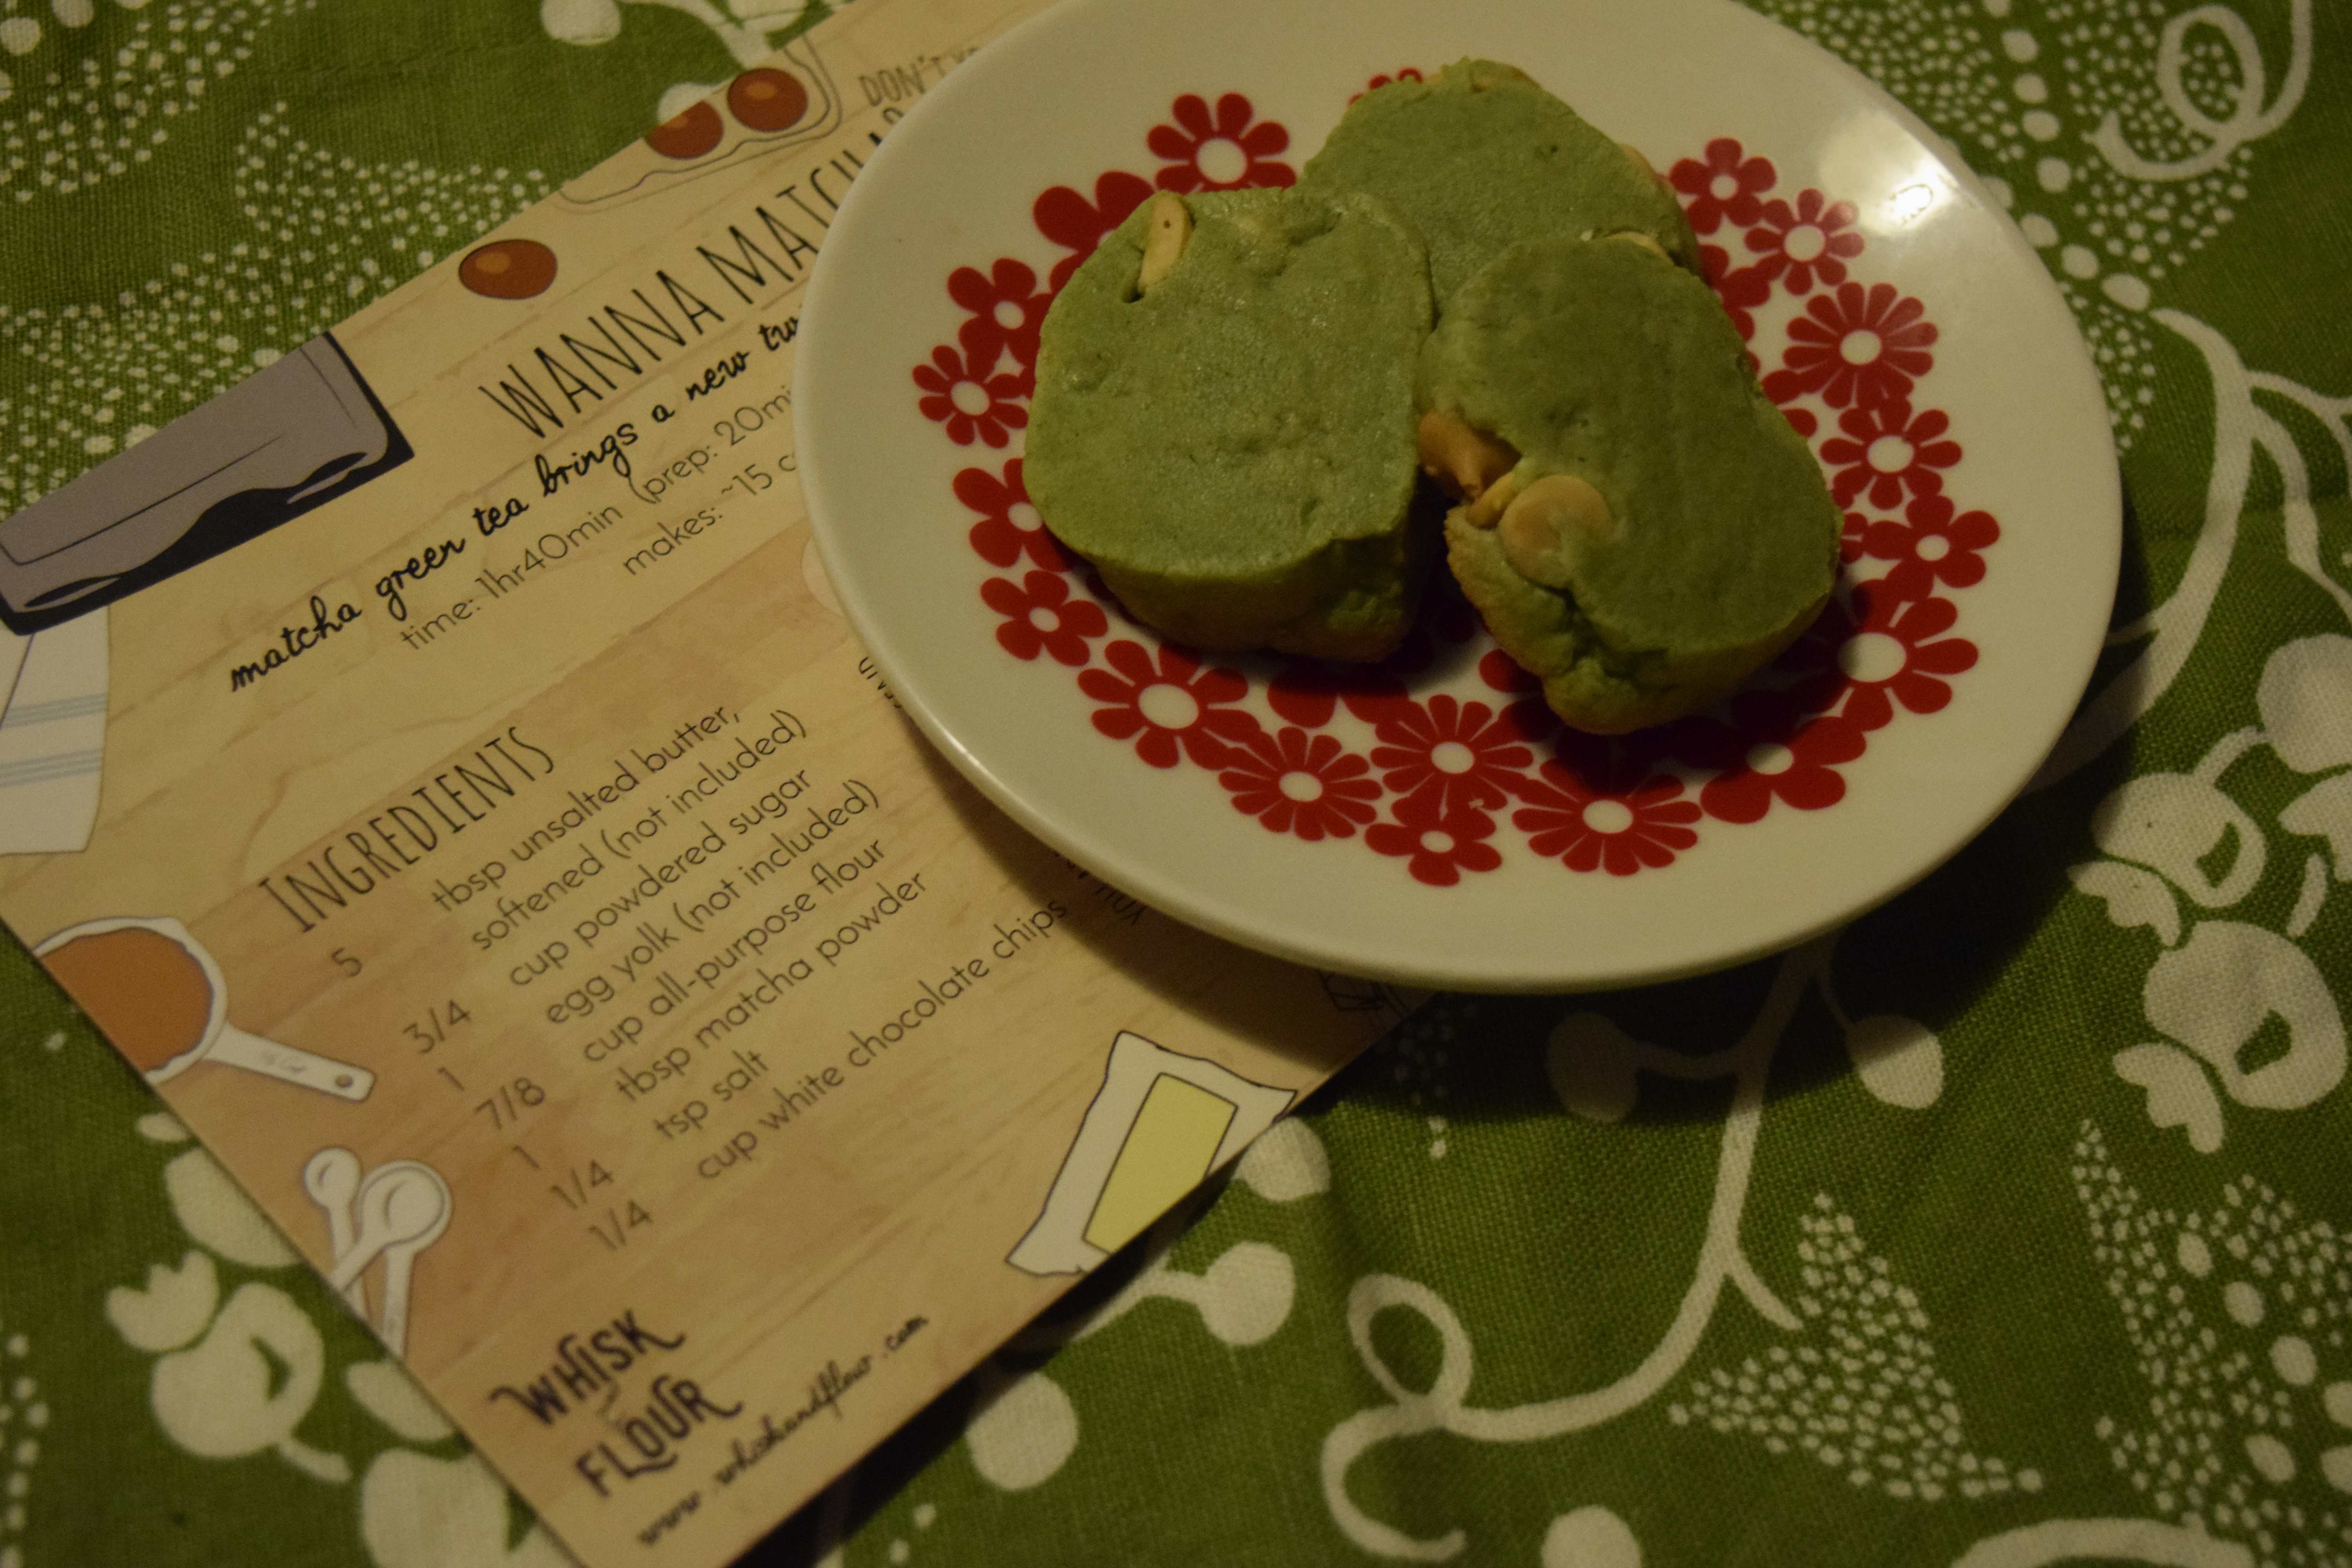 Whisk Amp Flour October 2016 Matcha White Chocolate Chip